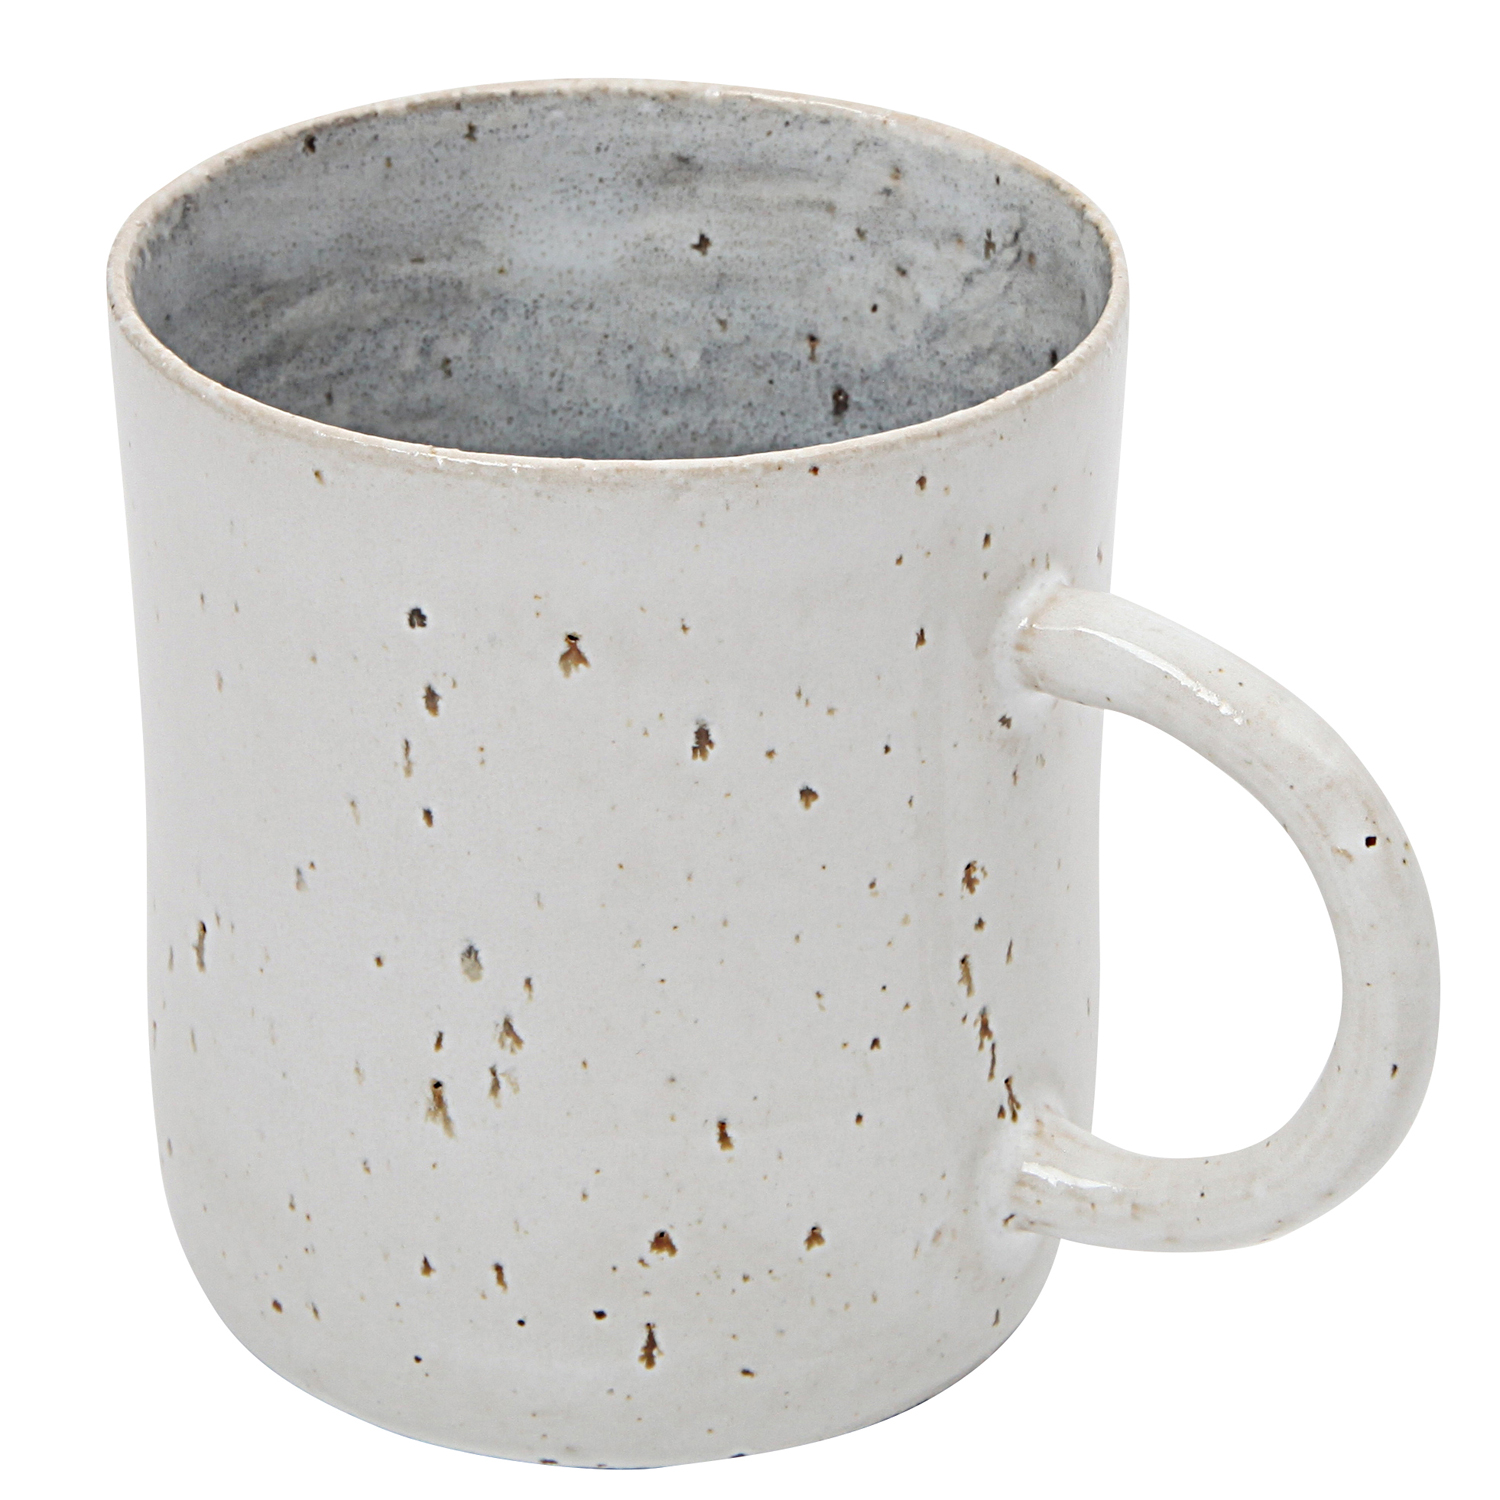 Tasja P. ceramics - Ceramic handmade mug with handle, white, grey ...